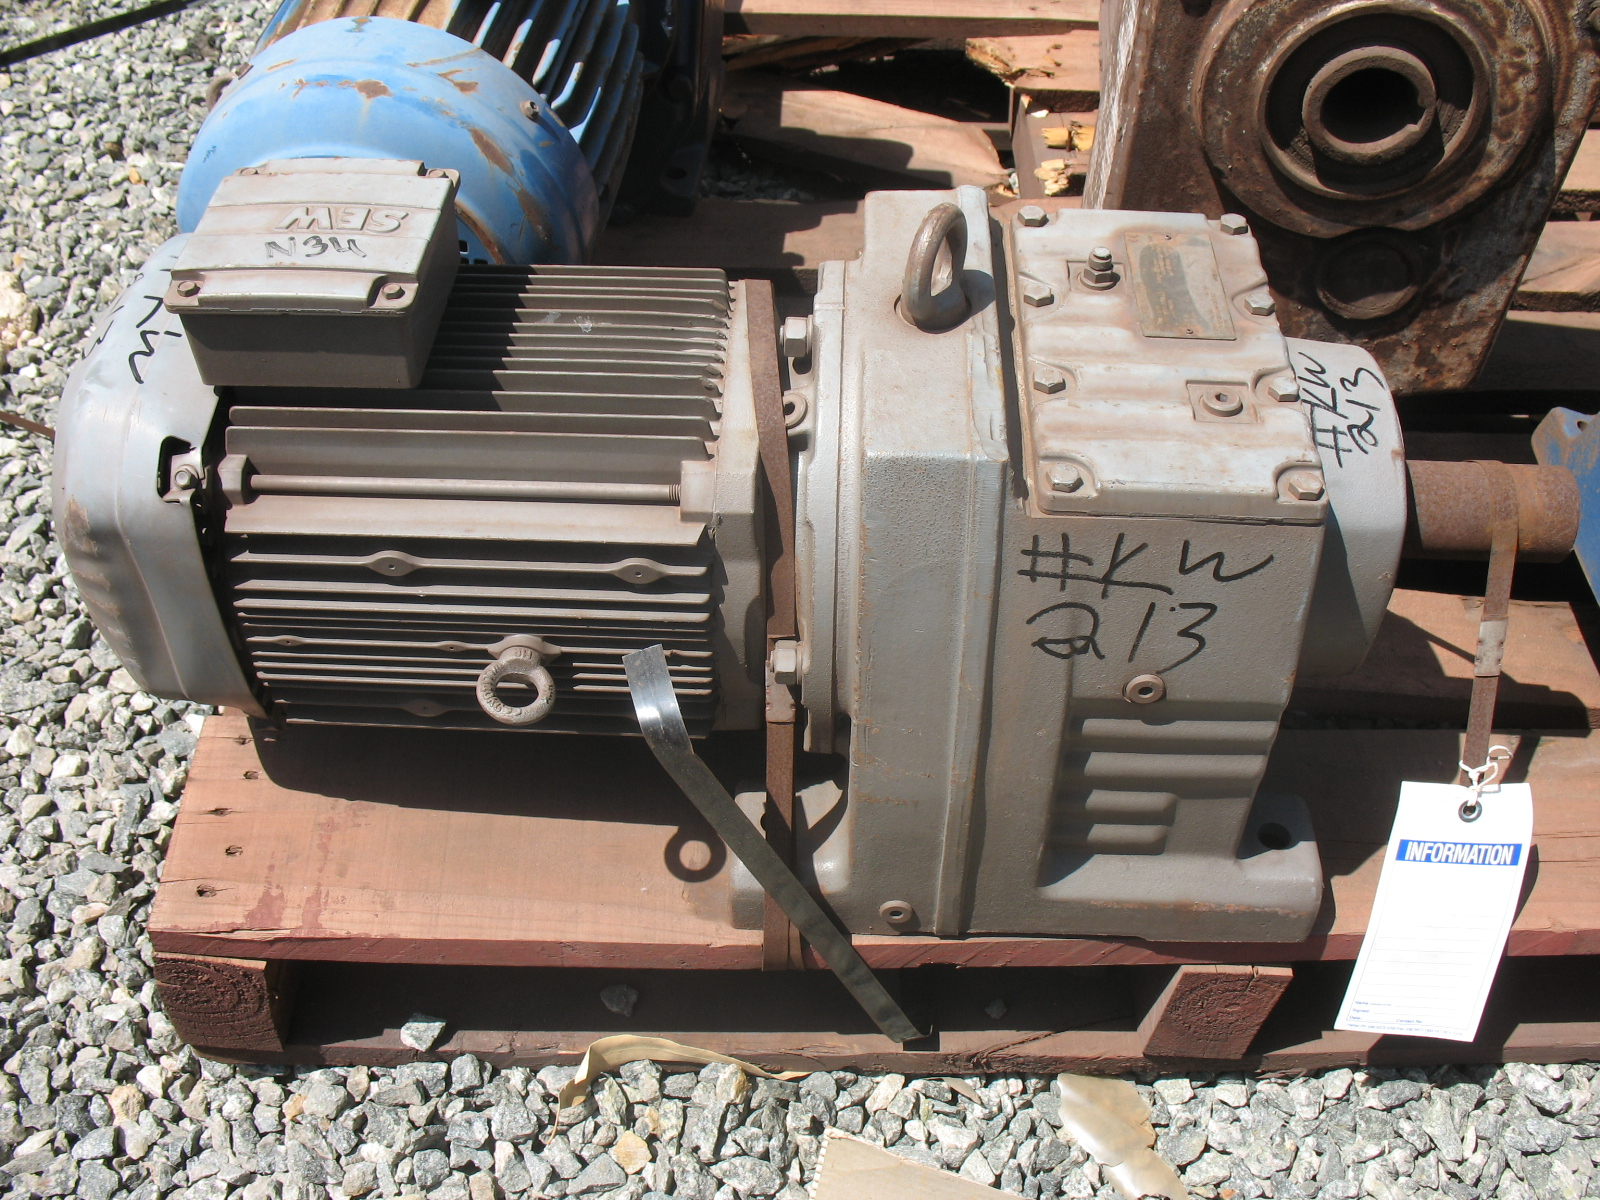 Sew euro drive motor gear box reducer crushing services for Sew motors and drives